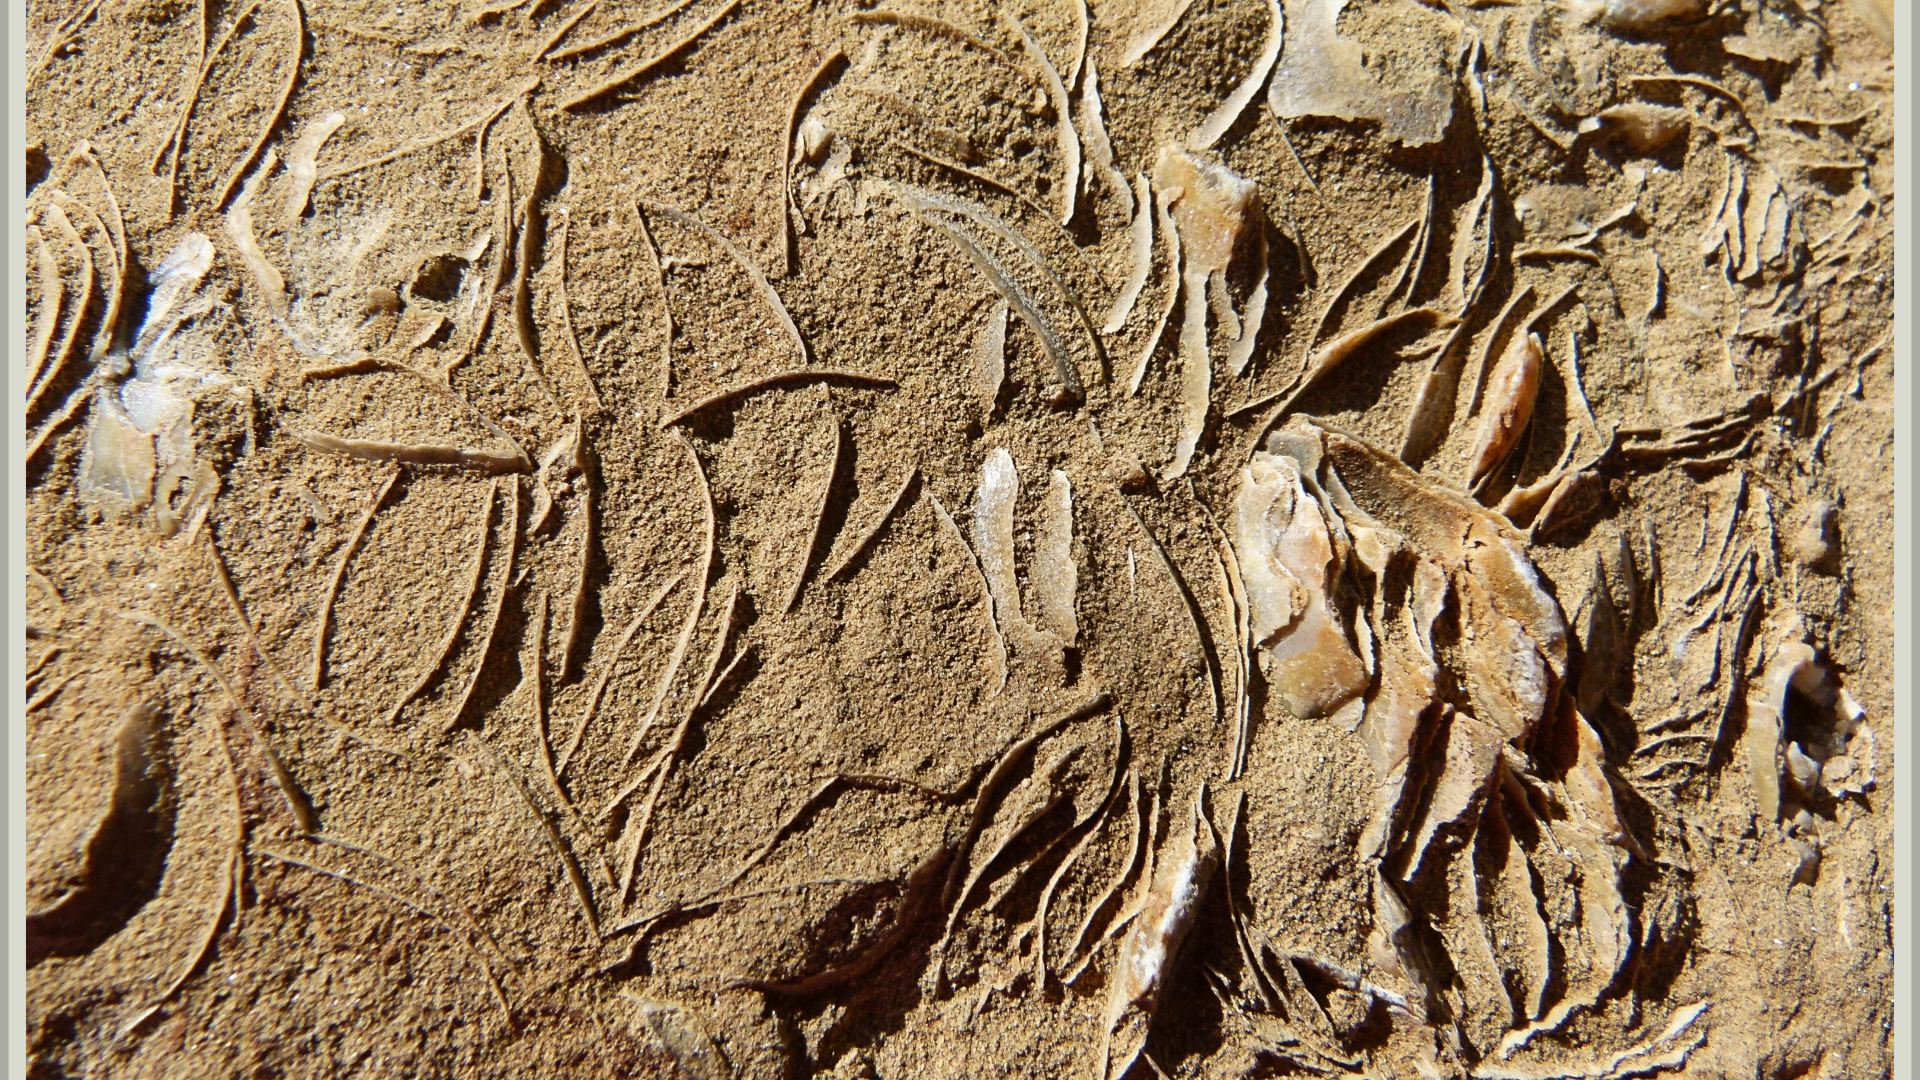 Middle Jurassic bivalve shell fossils at Eype